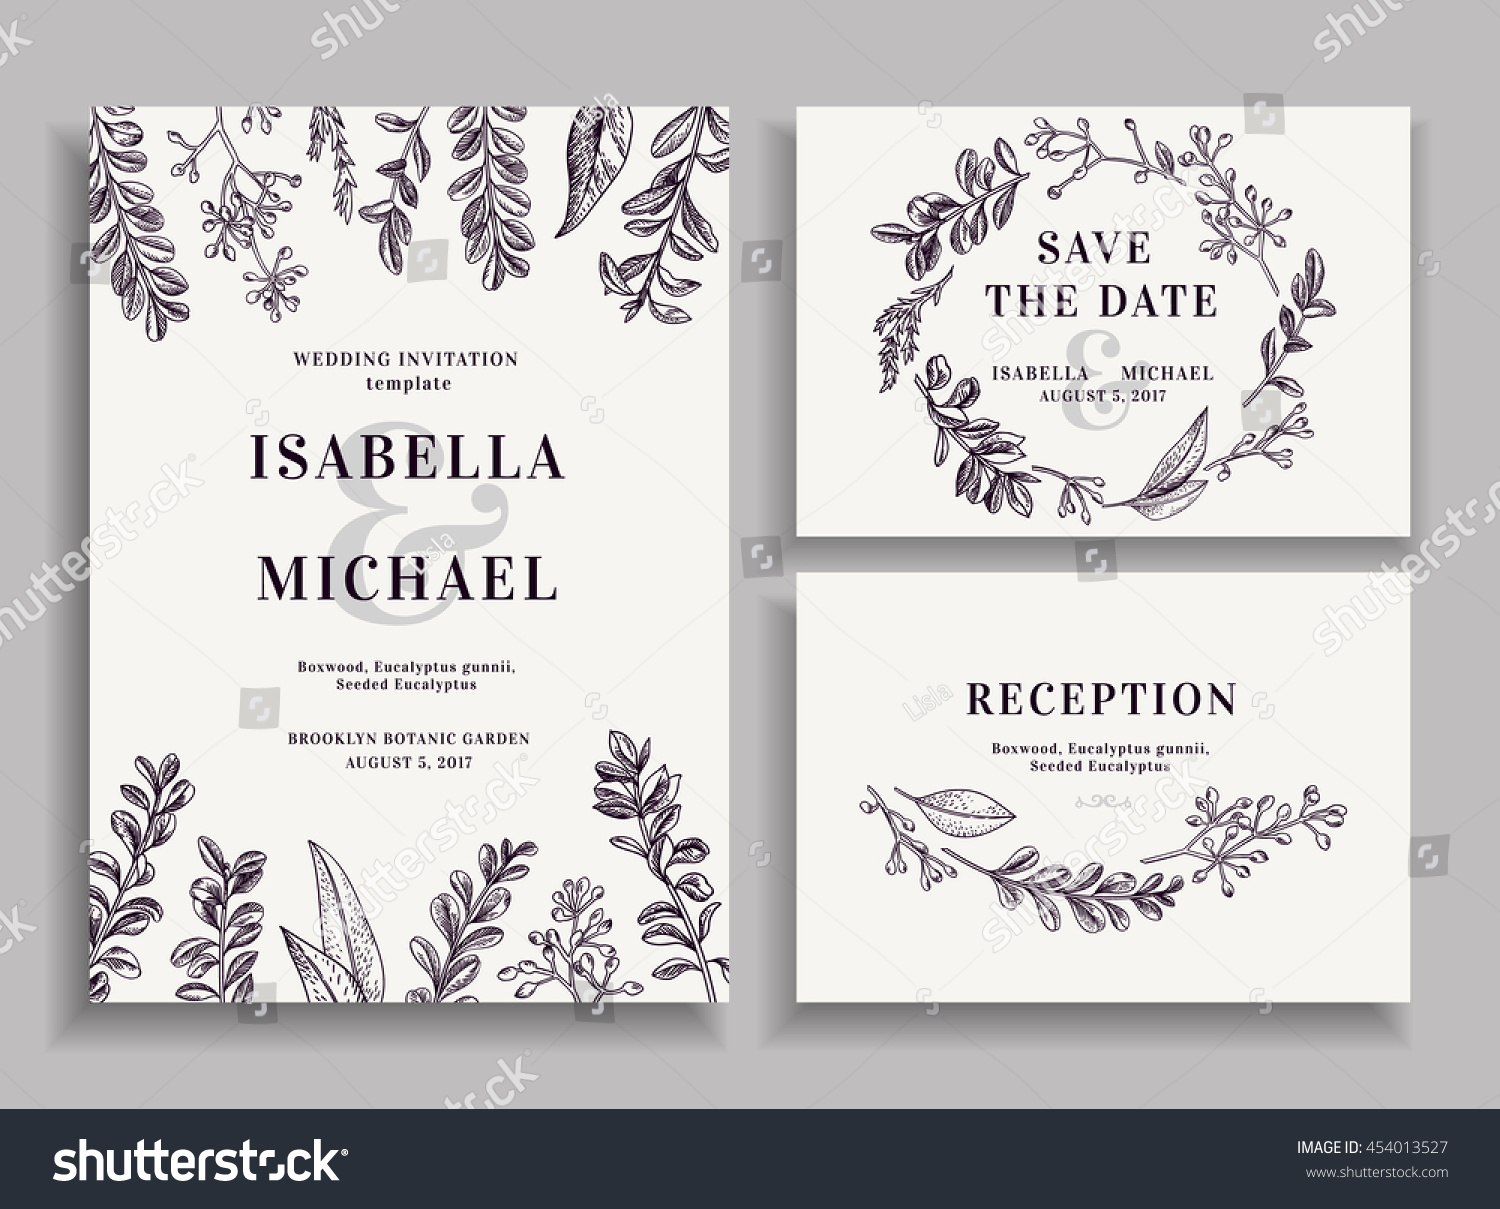 Matching Save The Date And Wedding Invitations: Vintage Wedding Set Greenery Wedding Invitation Stock